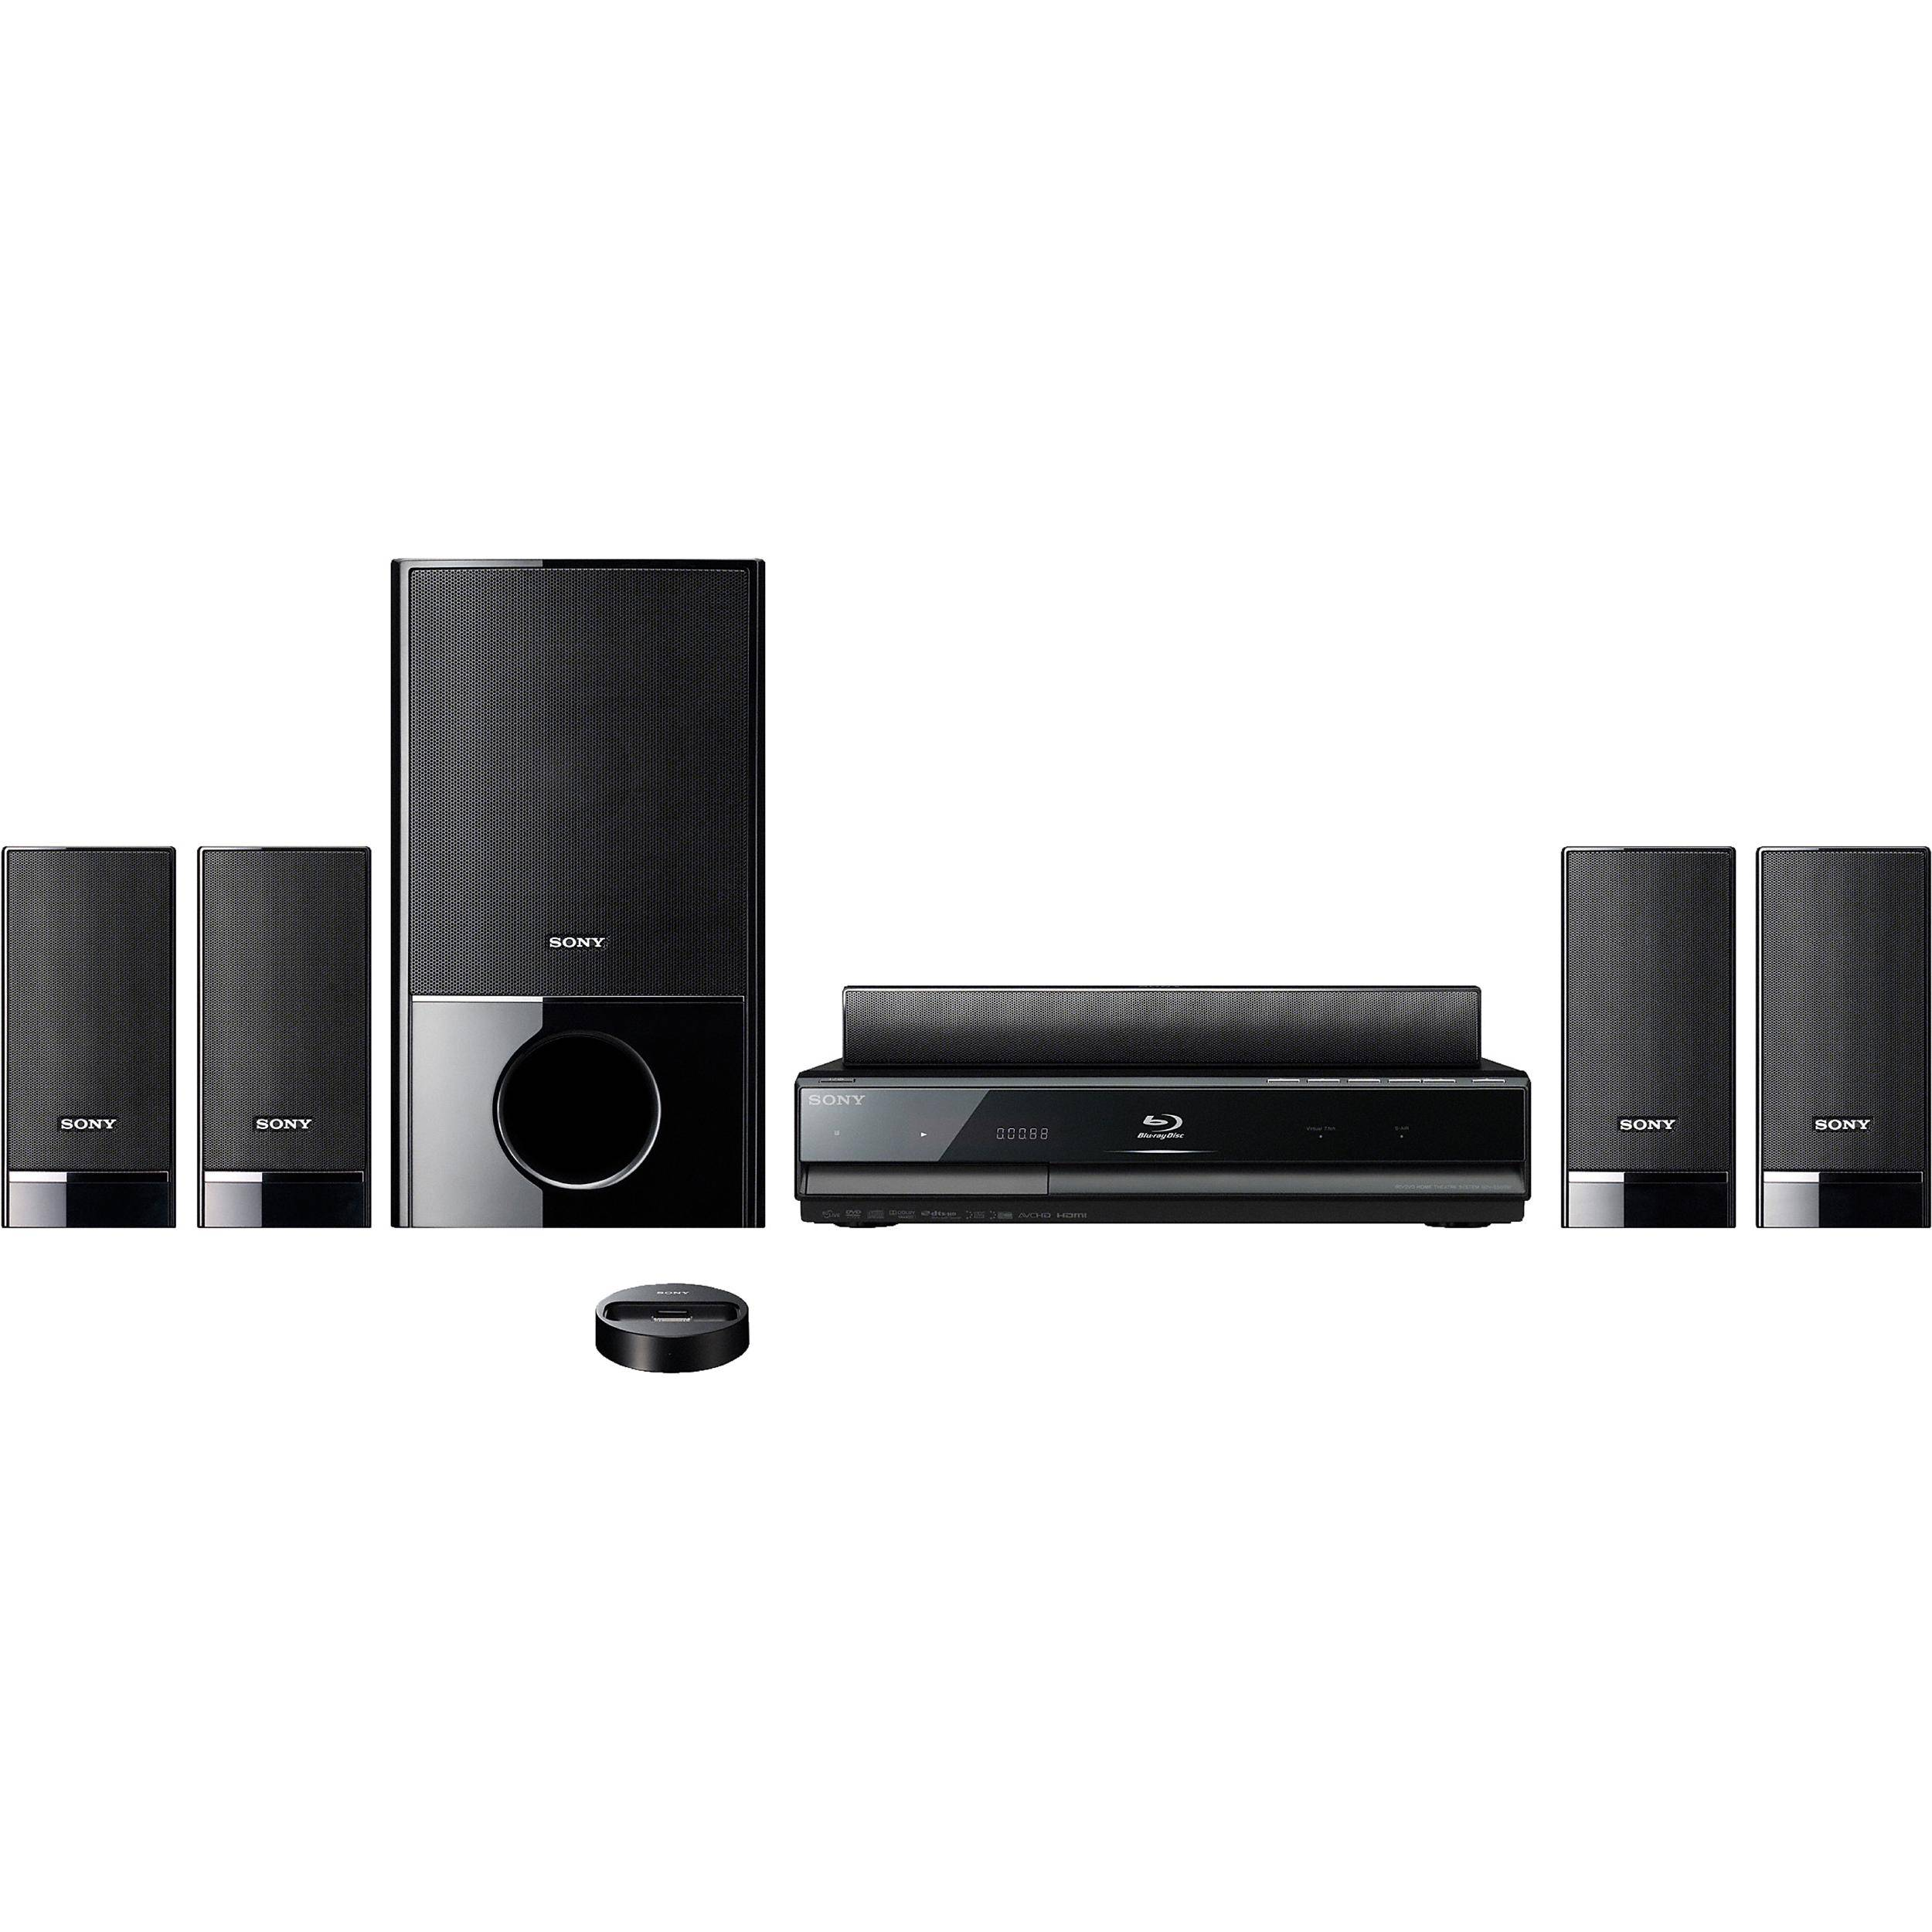 sony bdv e300 blu ray home theater system bdve300 b h photo. Black Bedroom Furniture Sets. Home Design Ideas